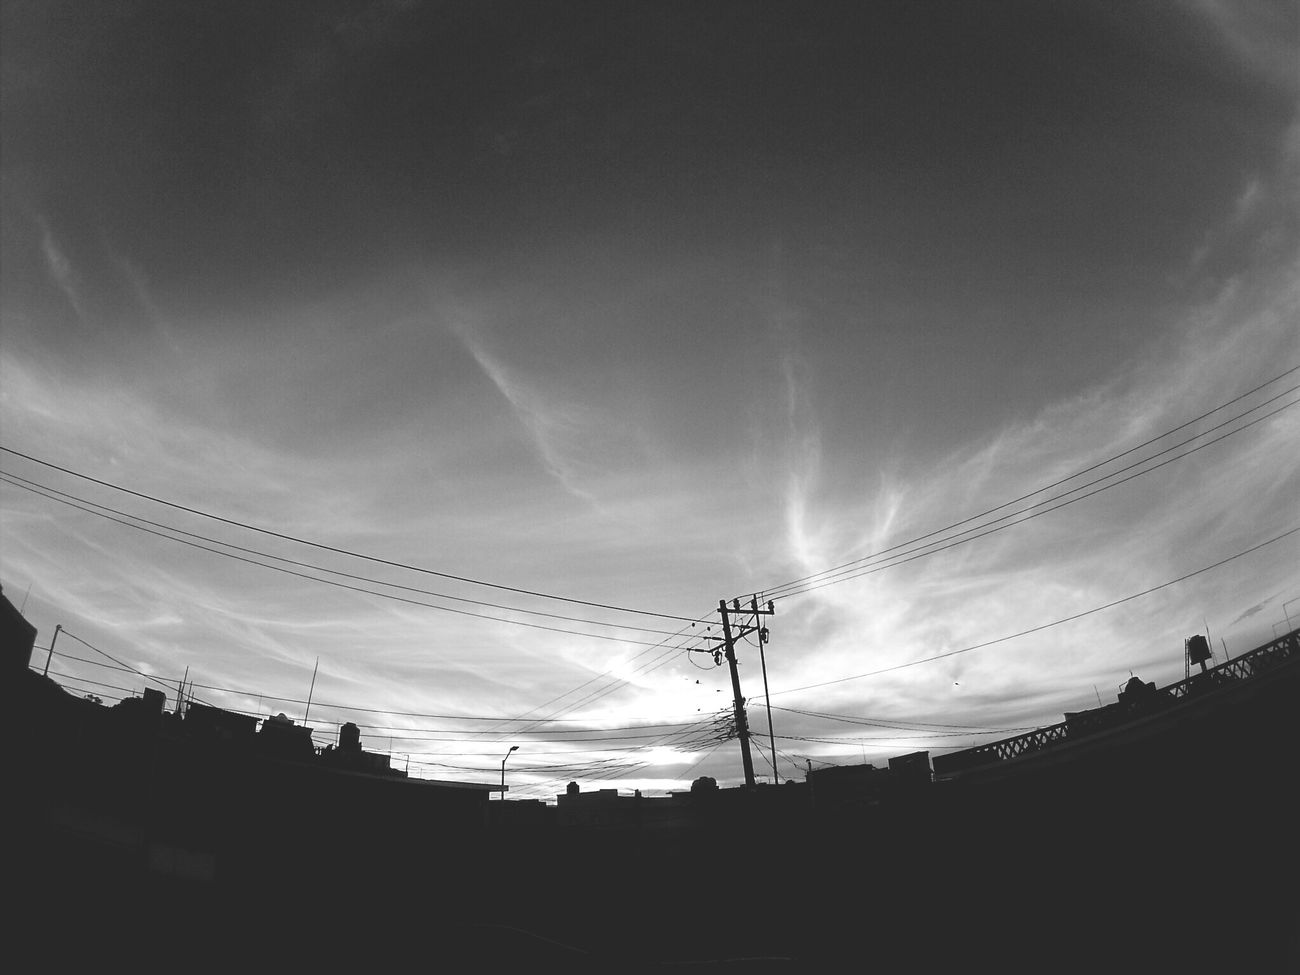 Cable Sky Power Line  Electricity  Power Supply Connection Fuel And Power Generation Low Angle View Electricity Pylon Outdoors No People Cloud - Sky Technology Day Architecture Blackandwhite